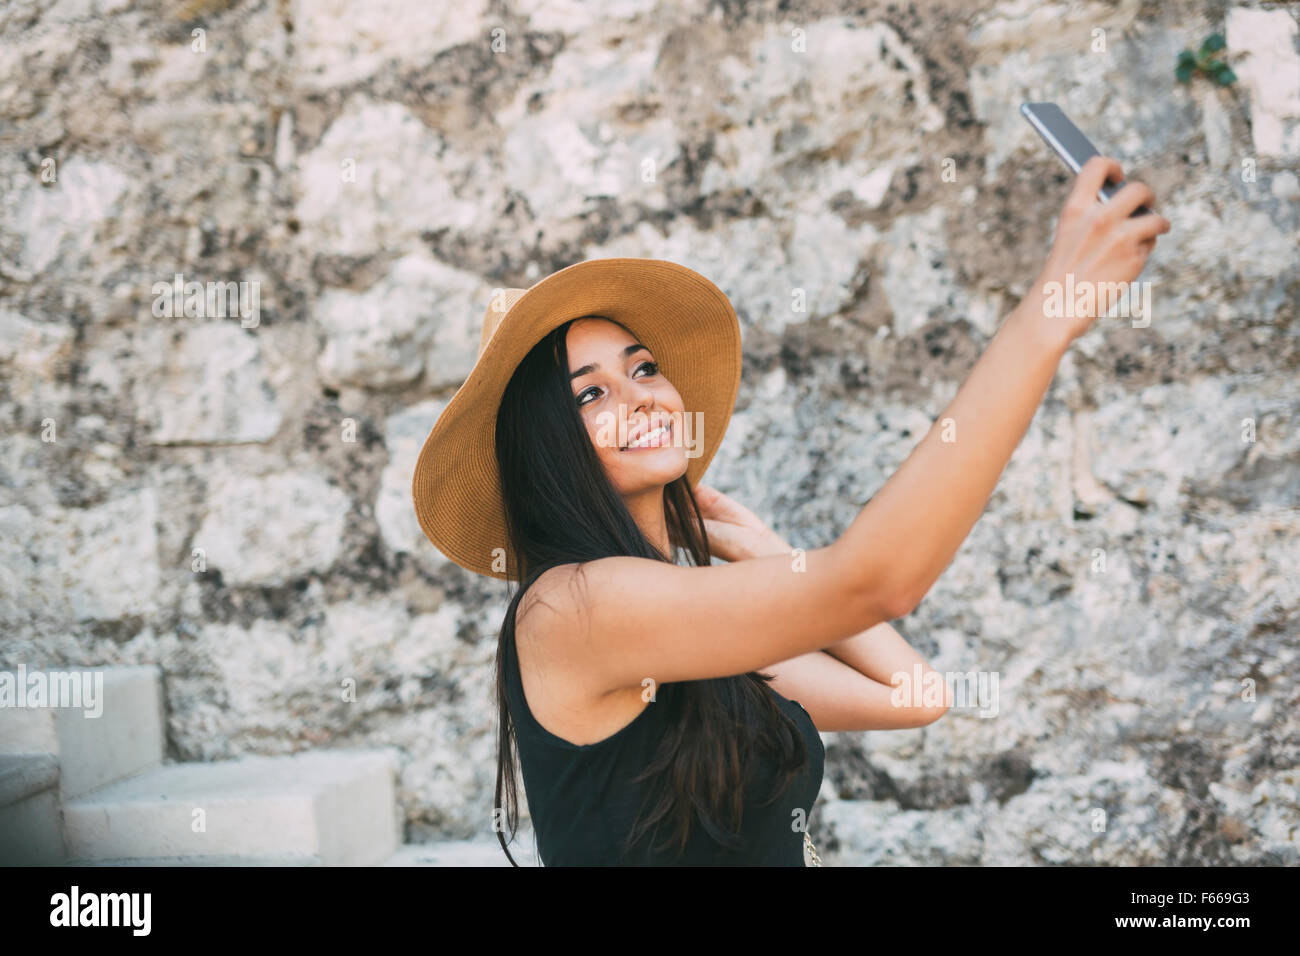 Beautiful girl taking a selfie and having a good time during summer - Stock Image